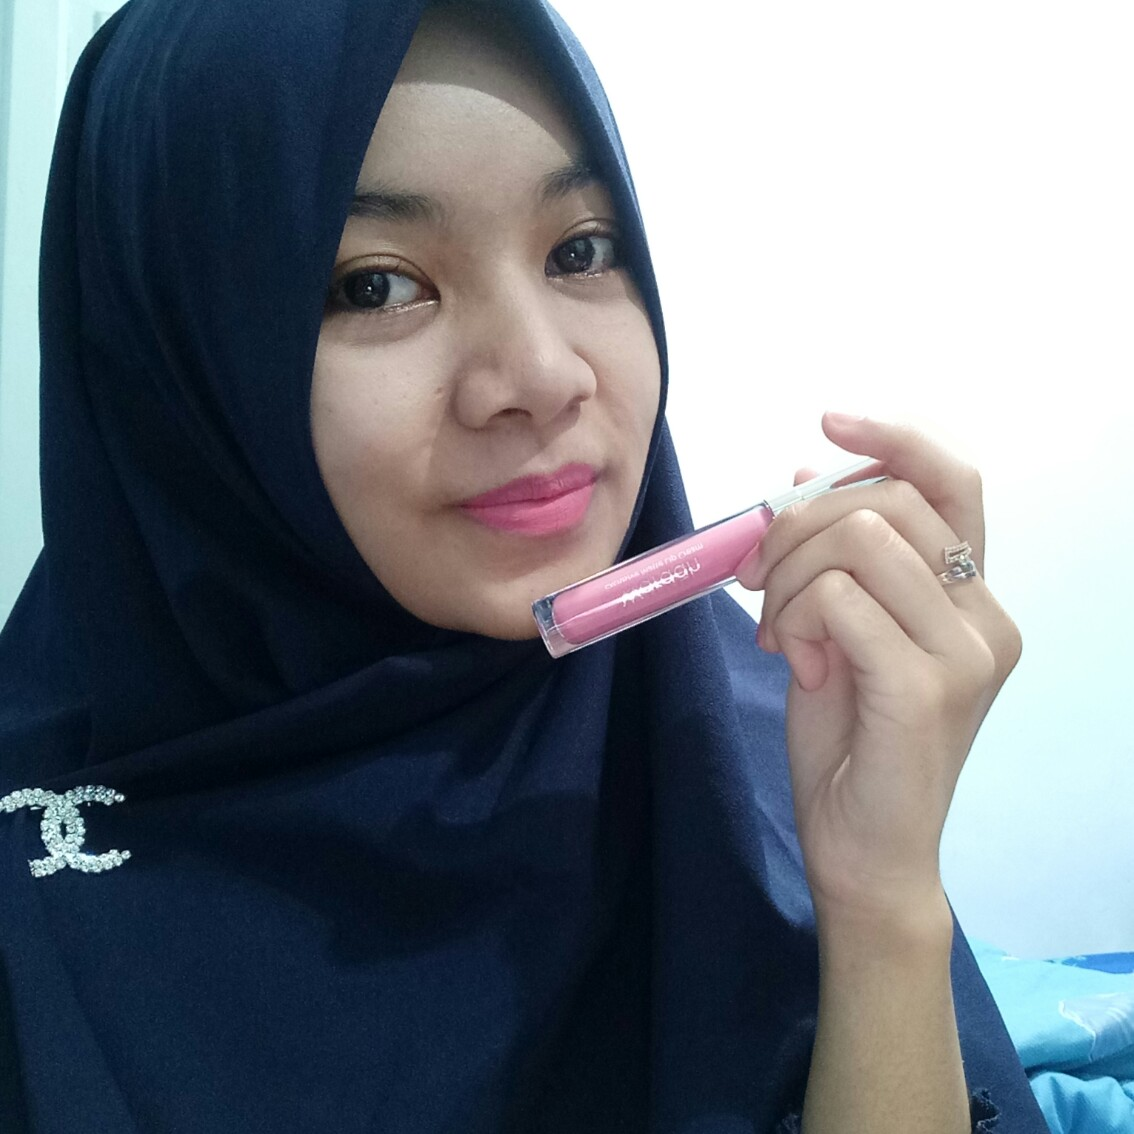 [REVIEW] Lip cream Wardah vs Emina vs Make Over - Scenes